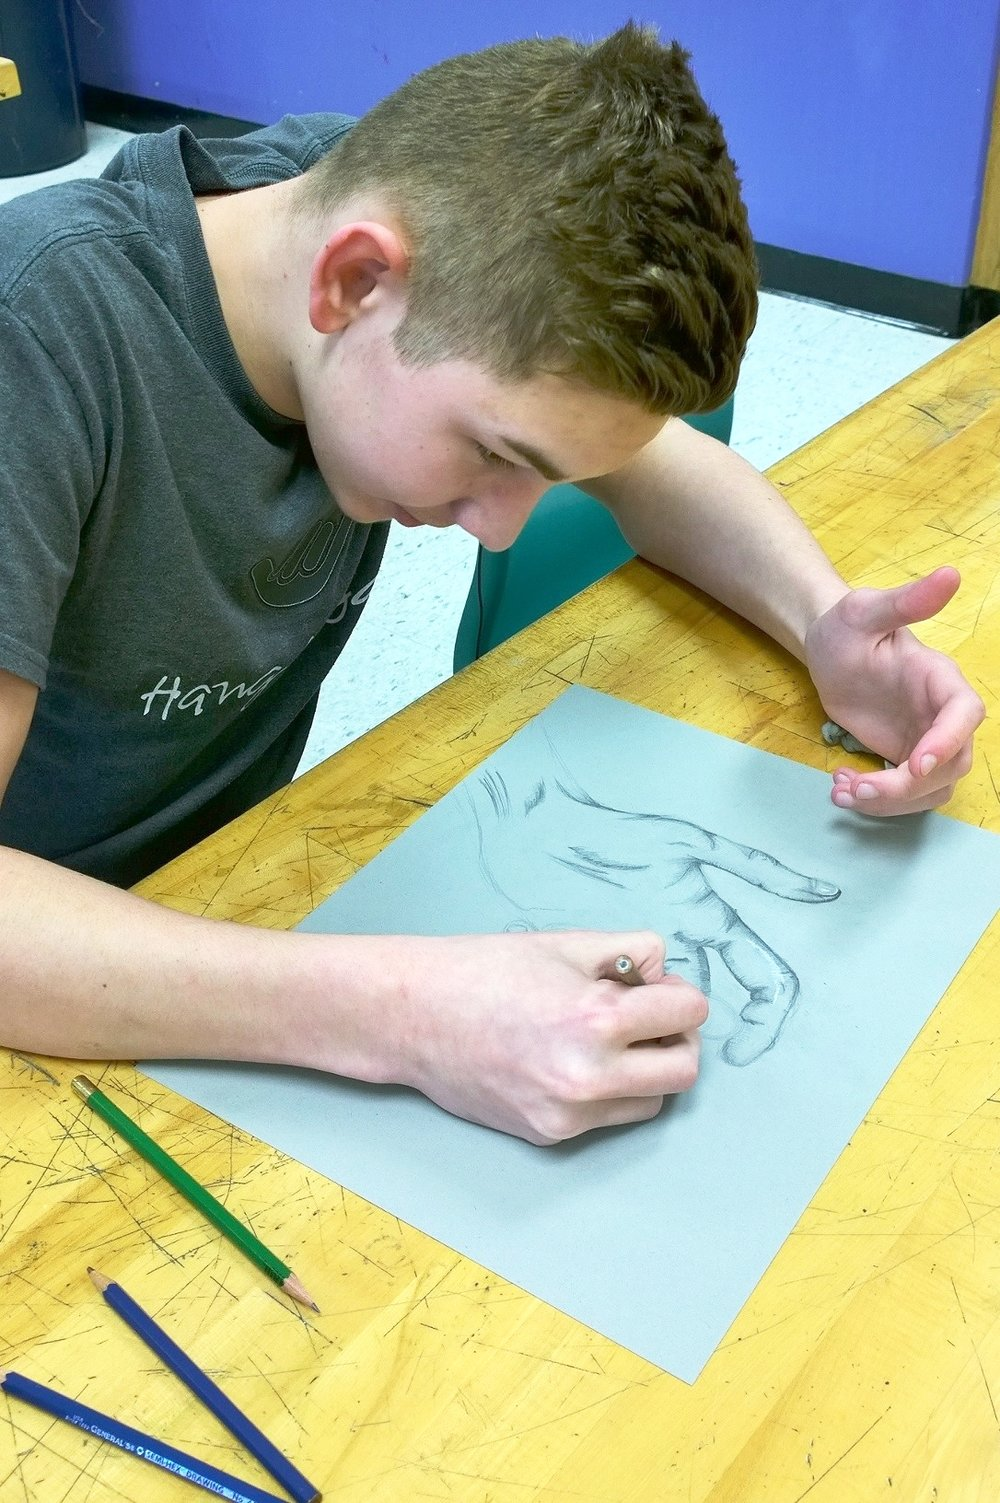 "Instructor Jean sent these photos of her CFAC class at North Oldham Middle School and said, ""All semester, we've been focusing on drawing hands. They are the most difficult part of the human body to draw accurately, so we started from the skeletal level and built on that. We will eventually create hands using different art movements. For example, next week we are starting a segment on Pop Art incorporating hands. For the last two weeks, we have been working on drawing, shading, and highlighting hands using toned paper, white charcoal, black charcoal, and different grades of graphite pencils."""